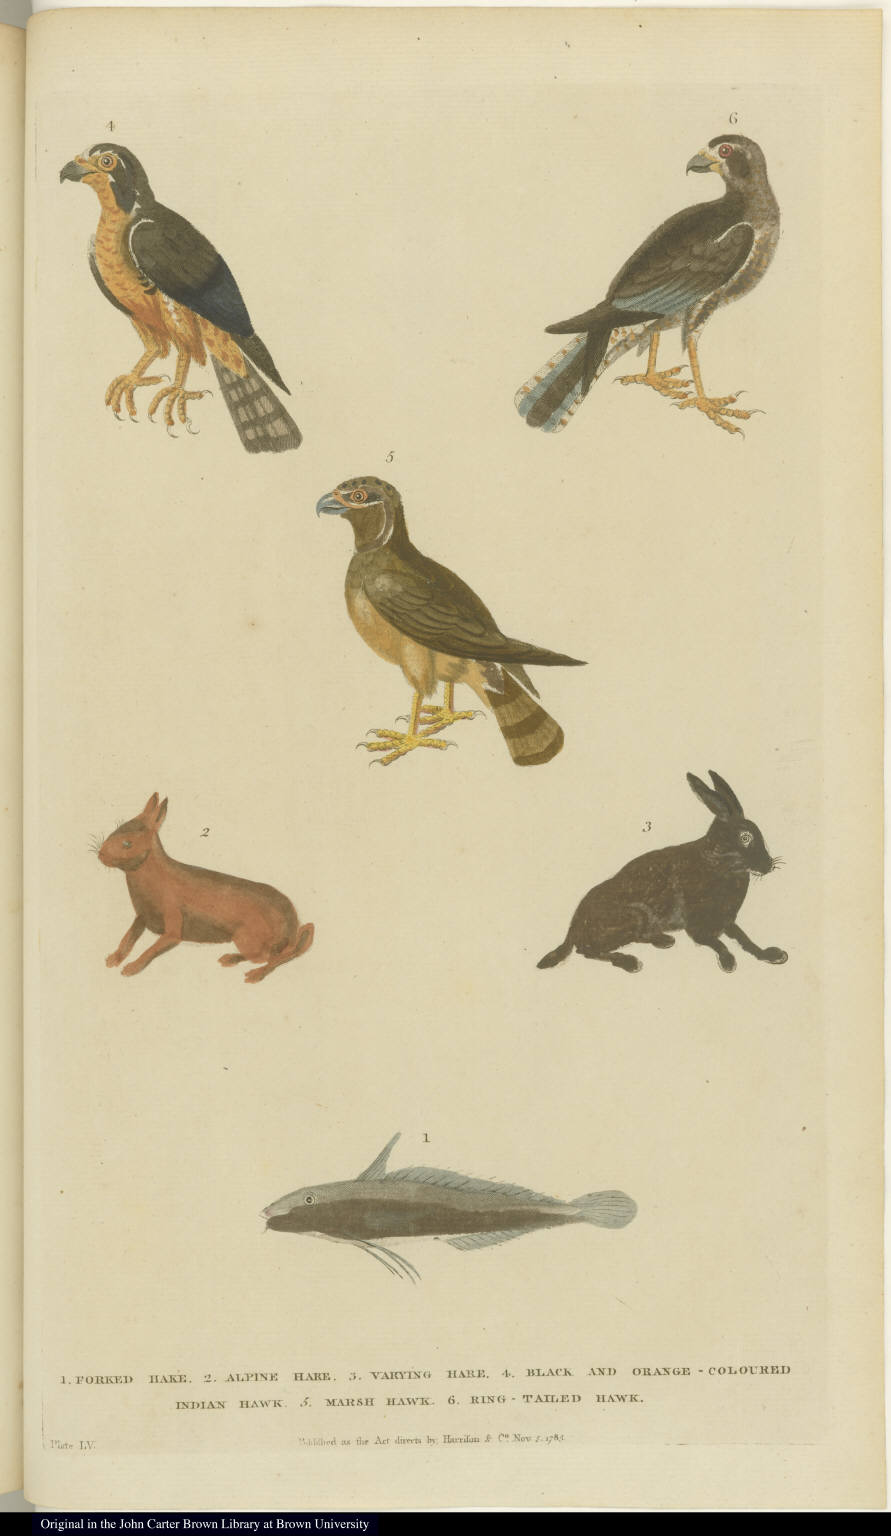 [Birds, hares, and fish]